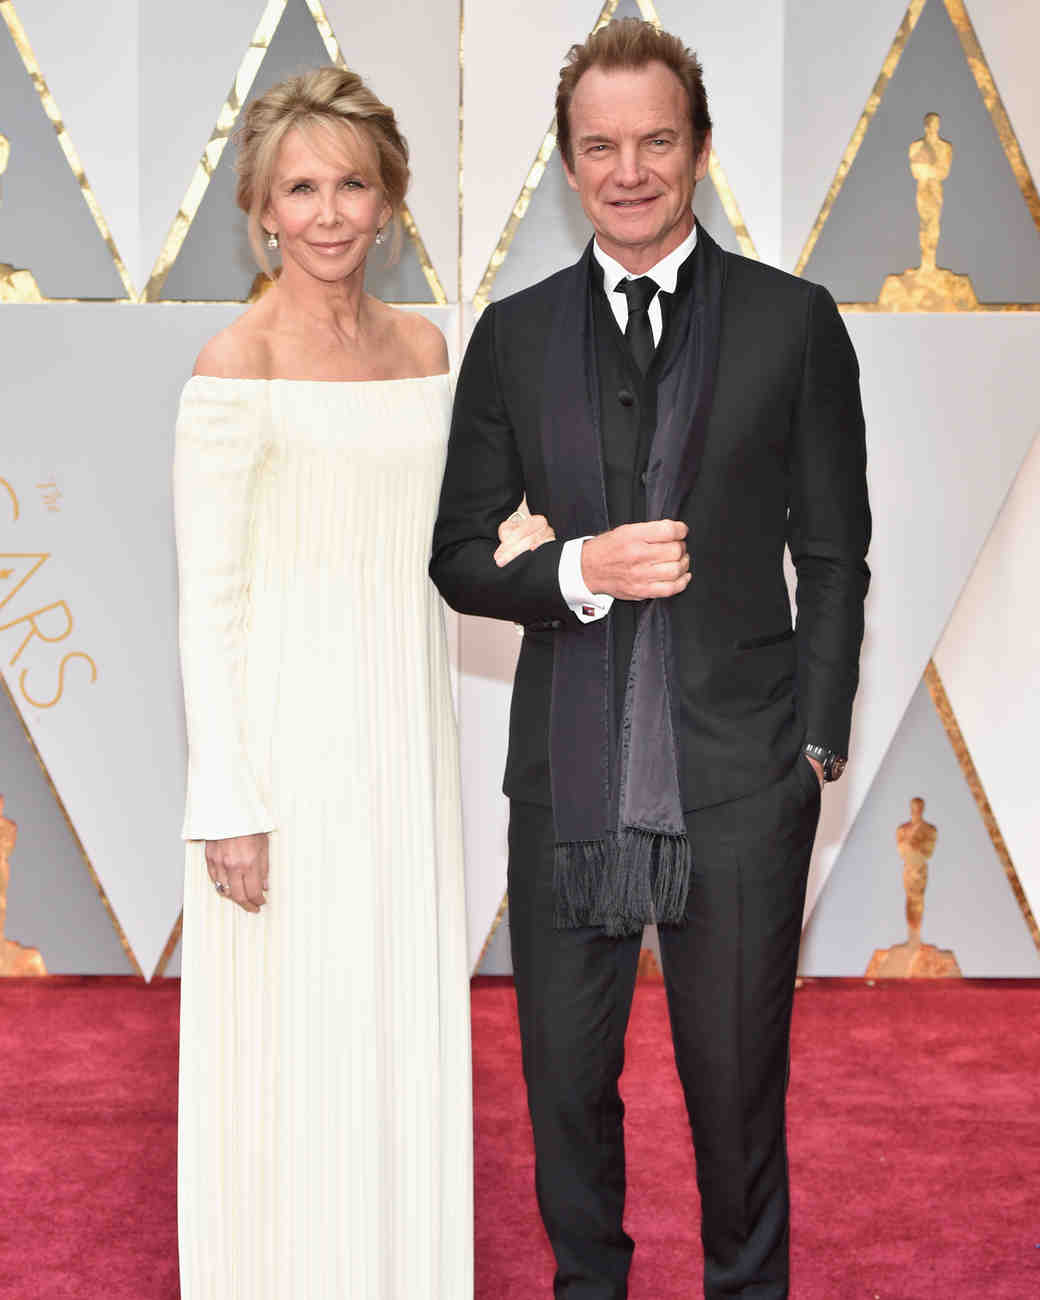 Trudie Styler and Sting at 2017 Academy Awards